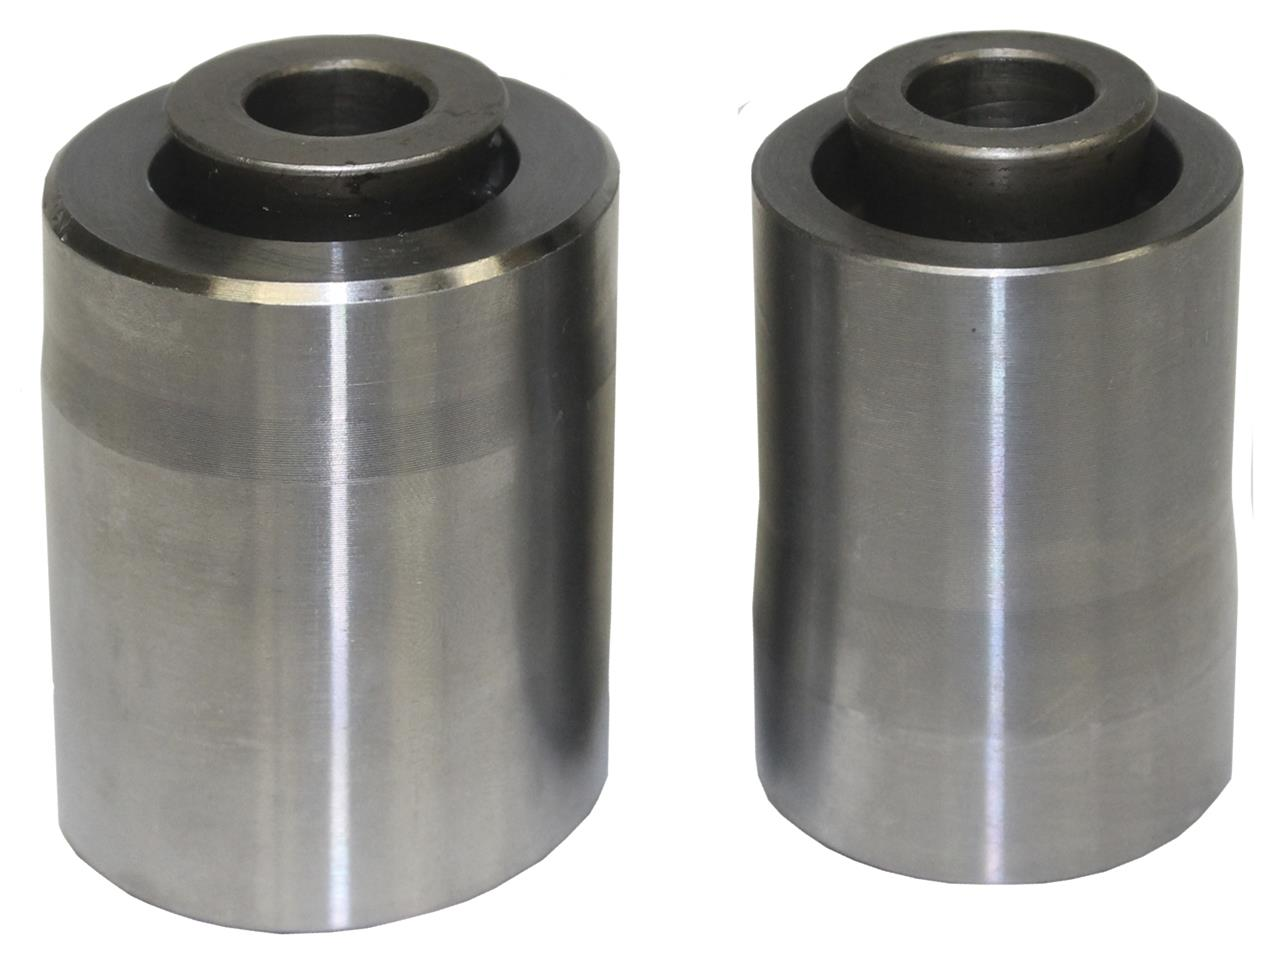 Howe 67-72 Chevelle Lower A-Frame Bushing Kit - (Pair)